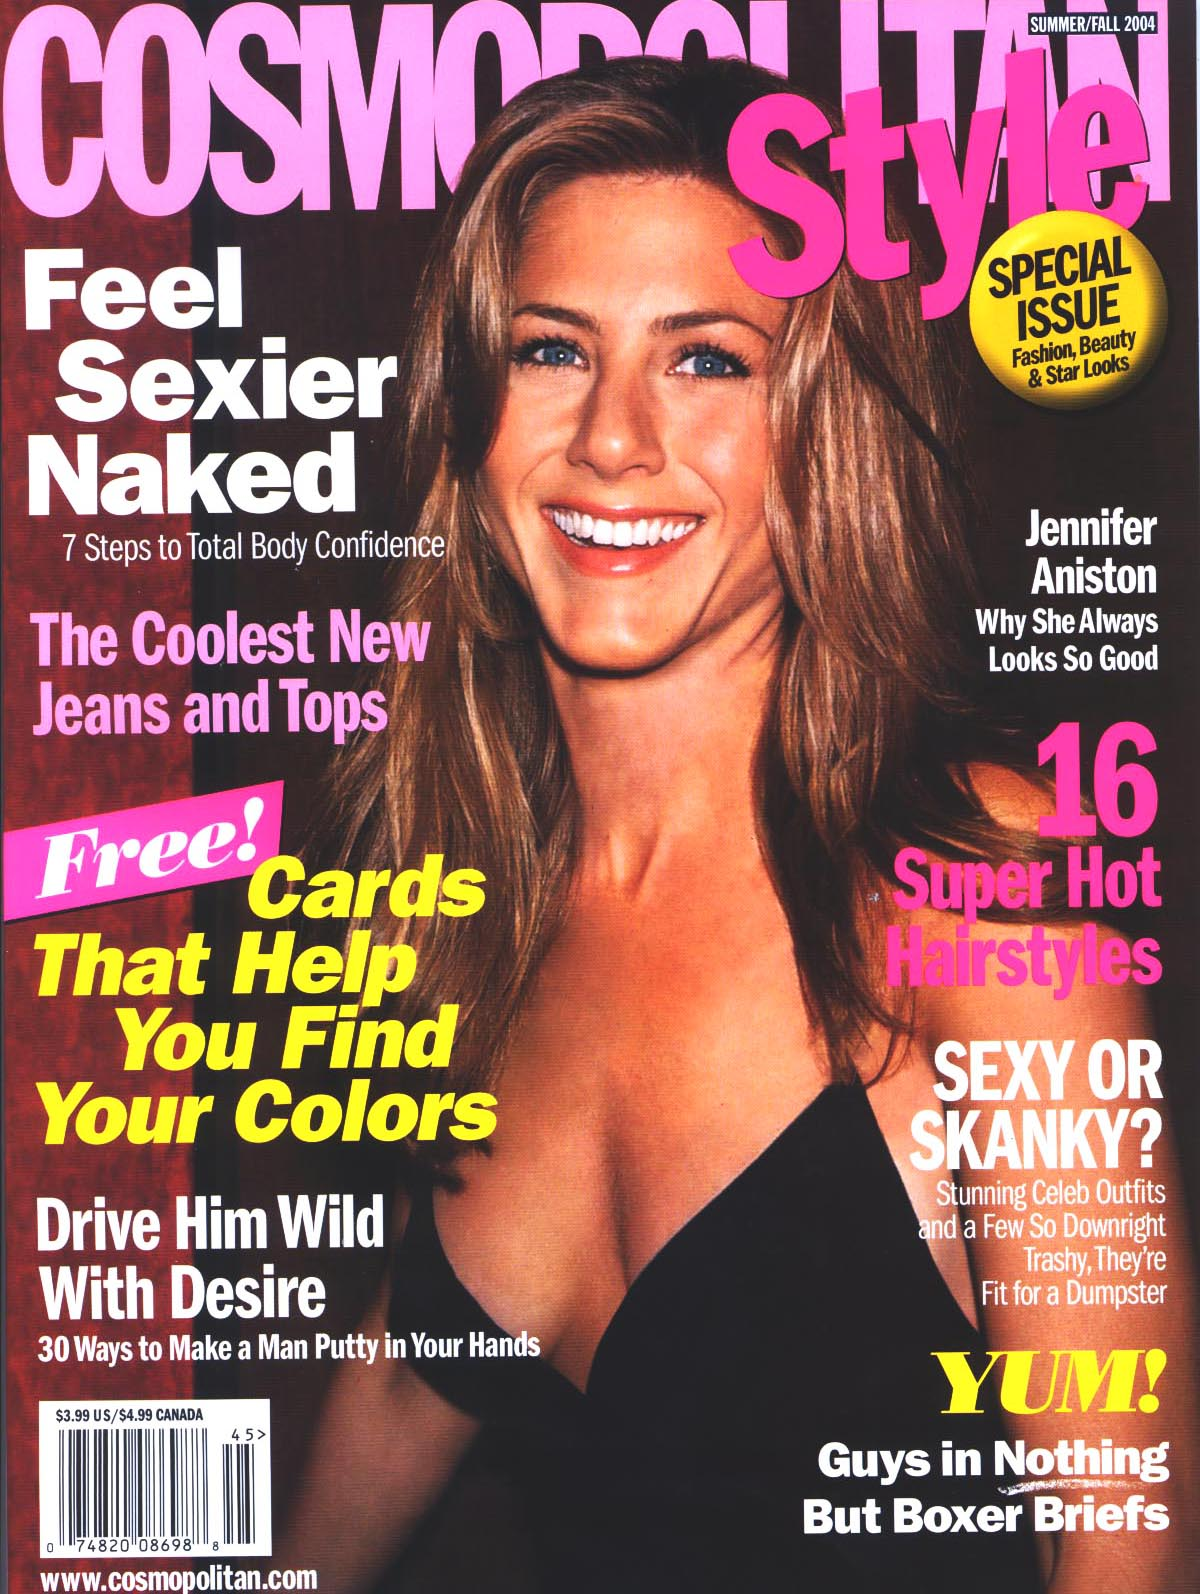 Cosmopolitan Style Issue-Cover page Aug. '04.jpg